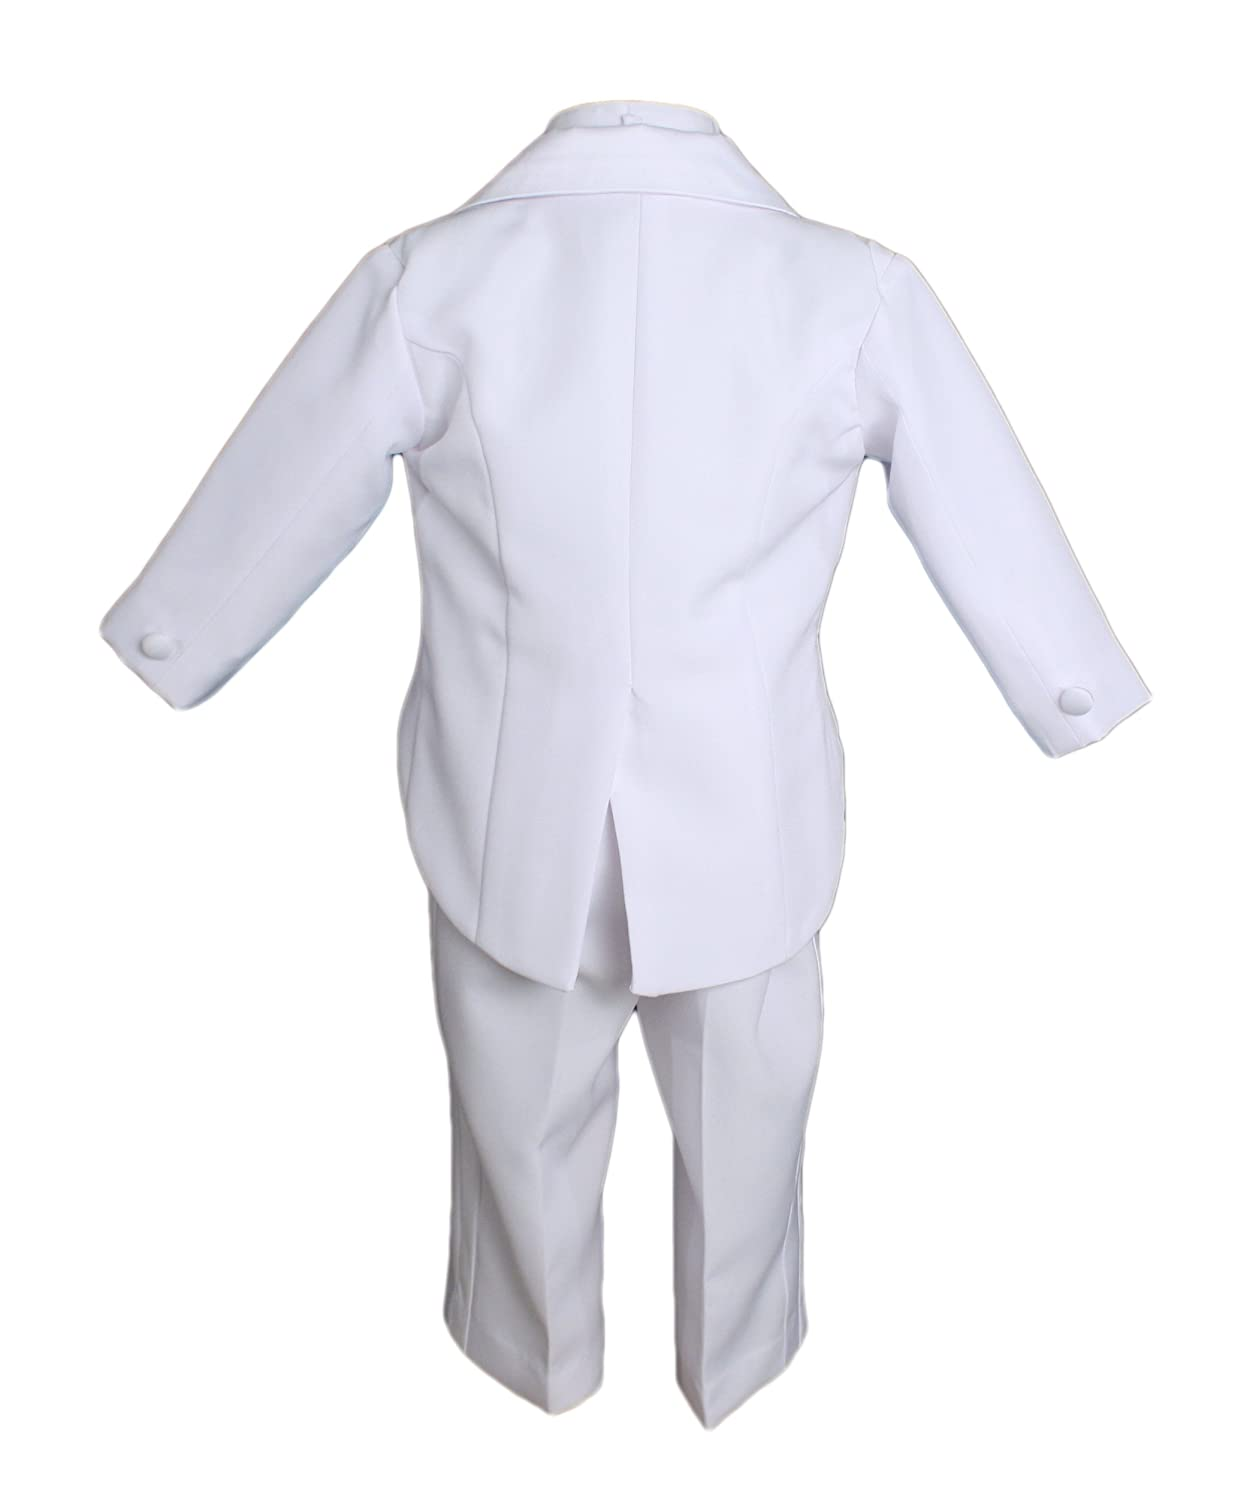 Baby Boys Formal White Poly Cotton 5 Piece Classic Suit Set with Tail